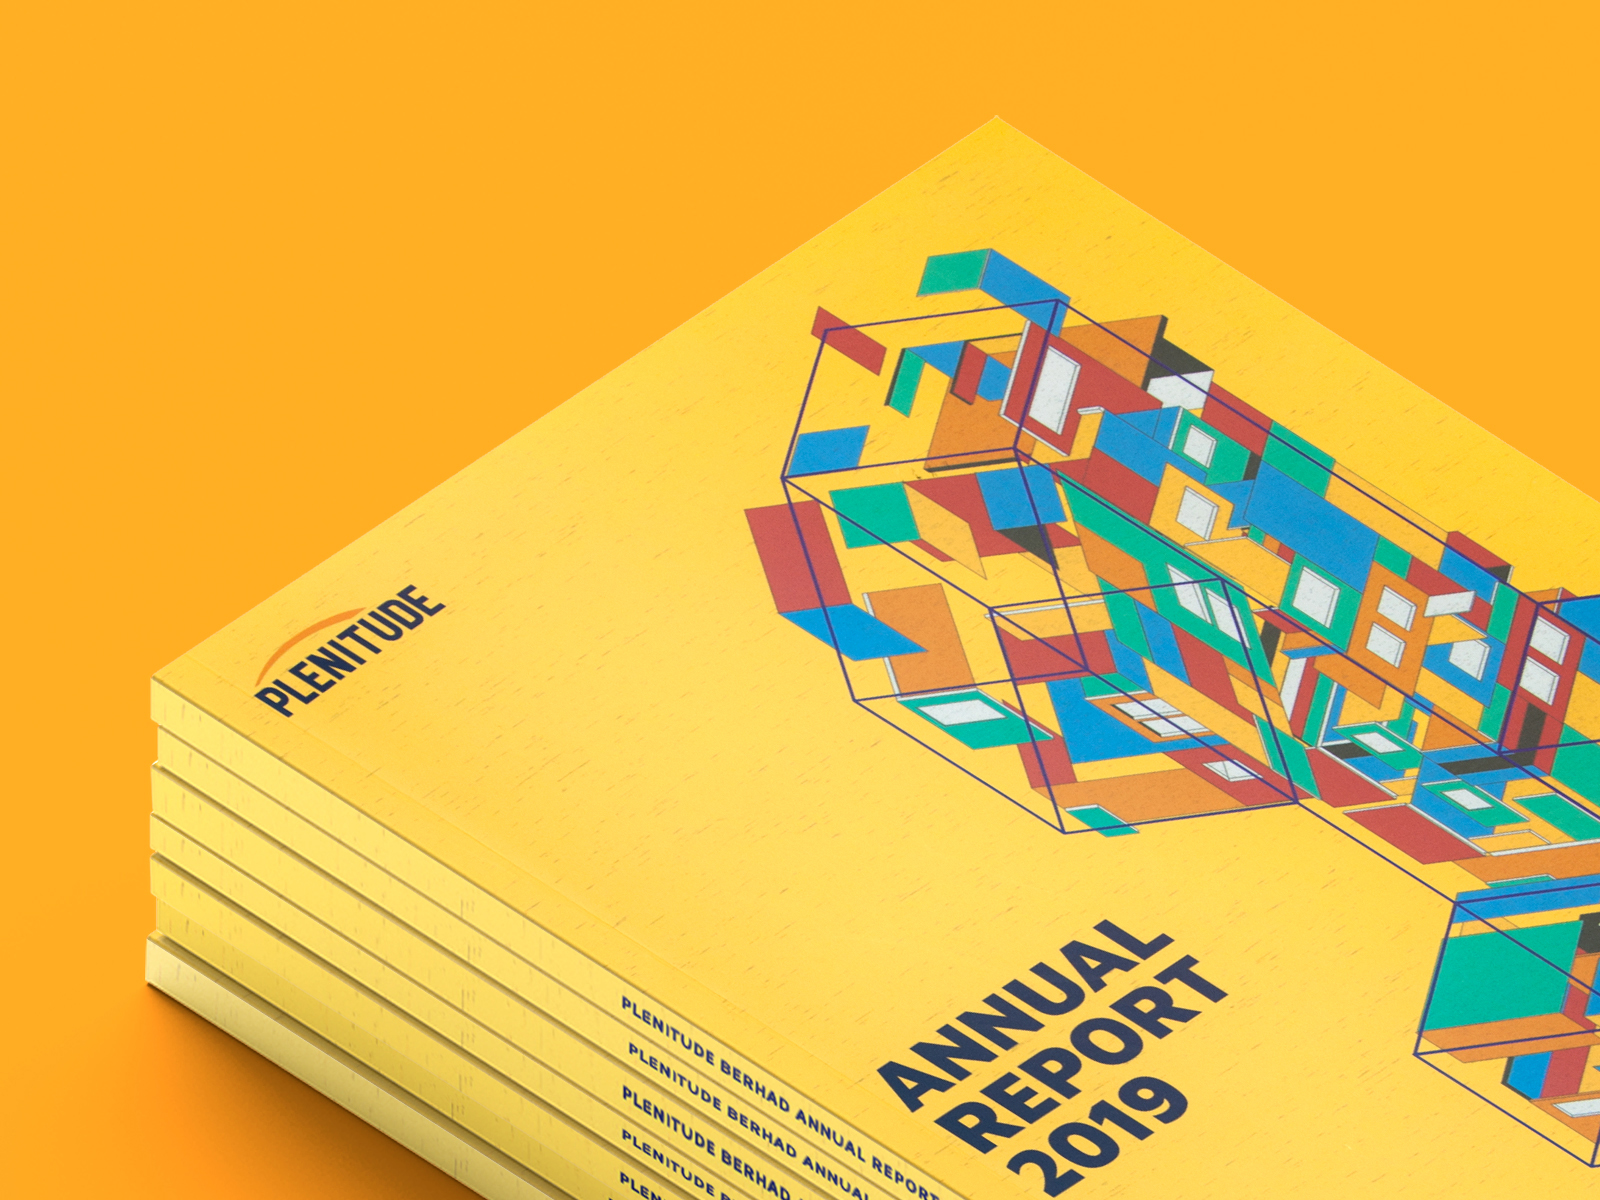 Plenitude annual report 2019 stacked